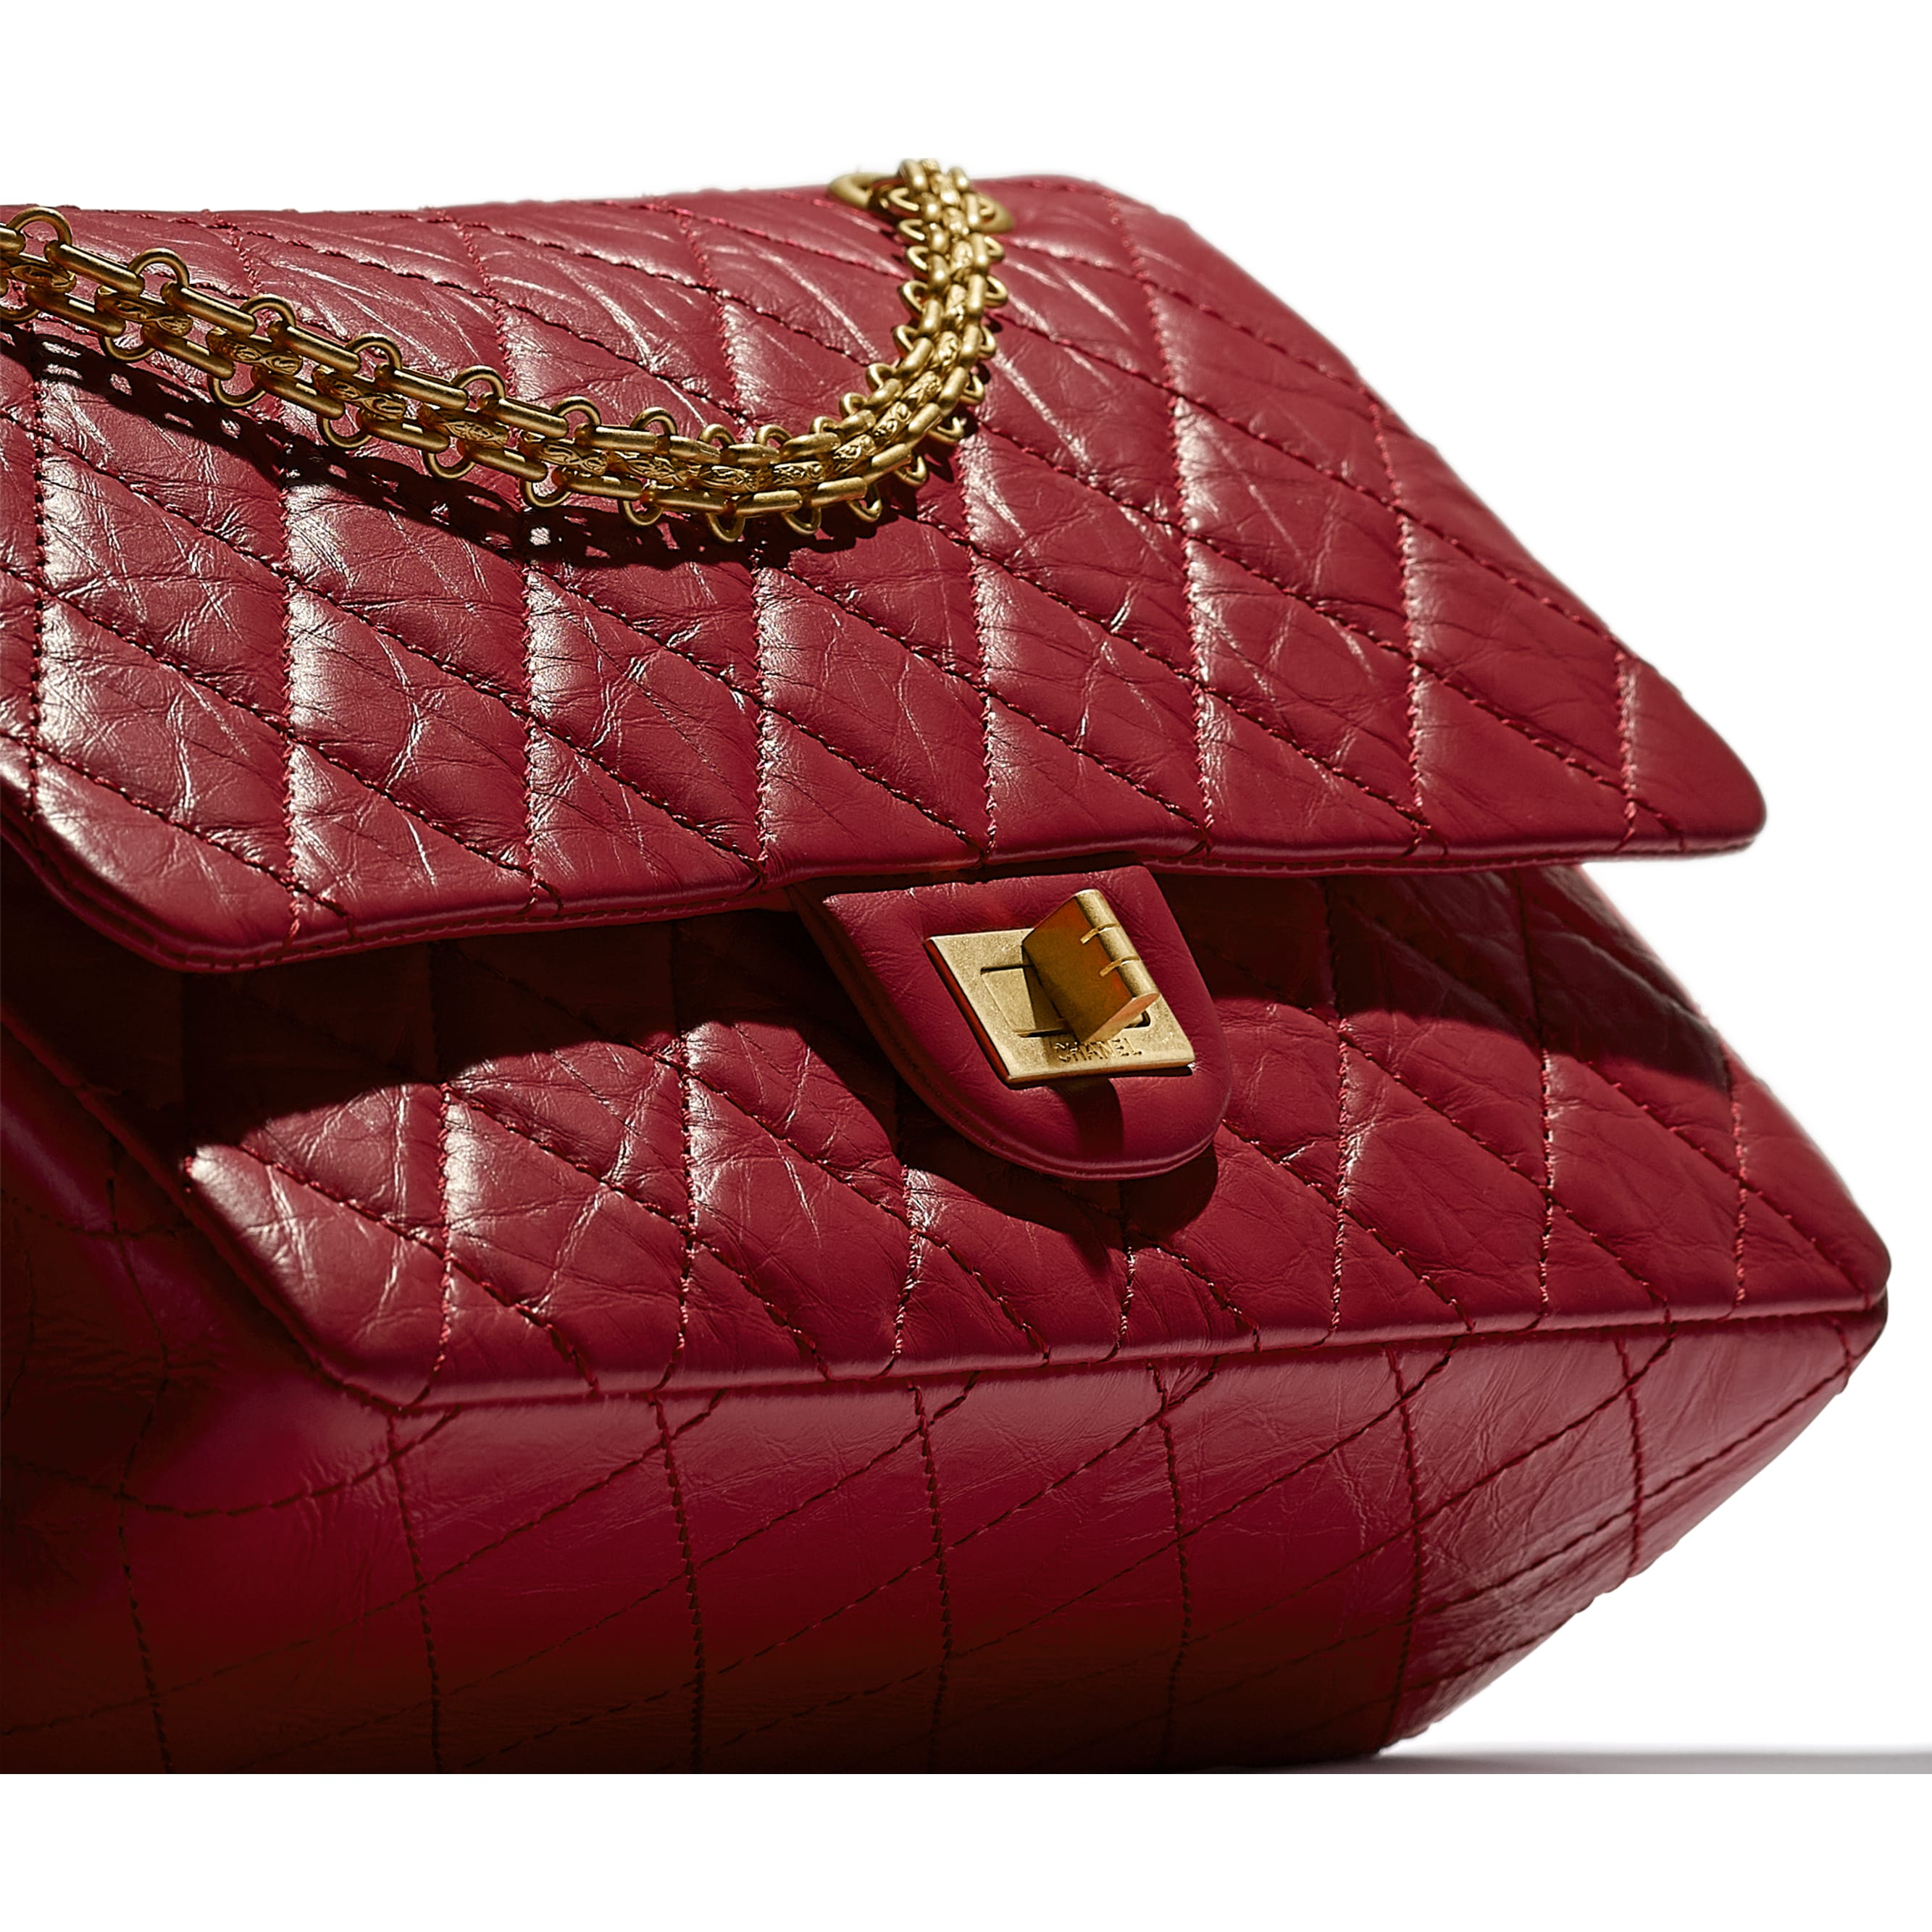 Large 2.55 Handbag - Red - Aged Calfskin & Gold-Tone Metal - CHANEL - Extra view - see standard sized version